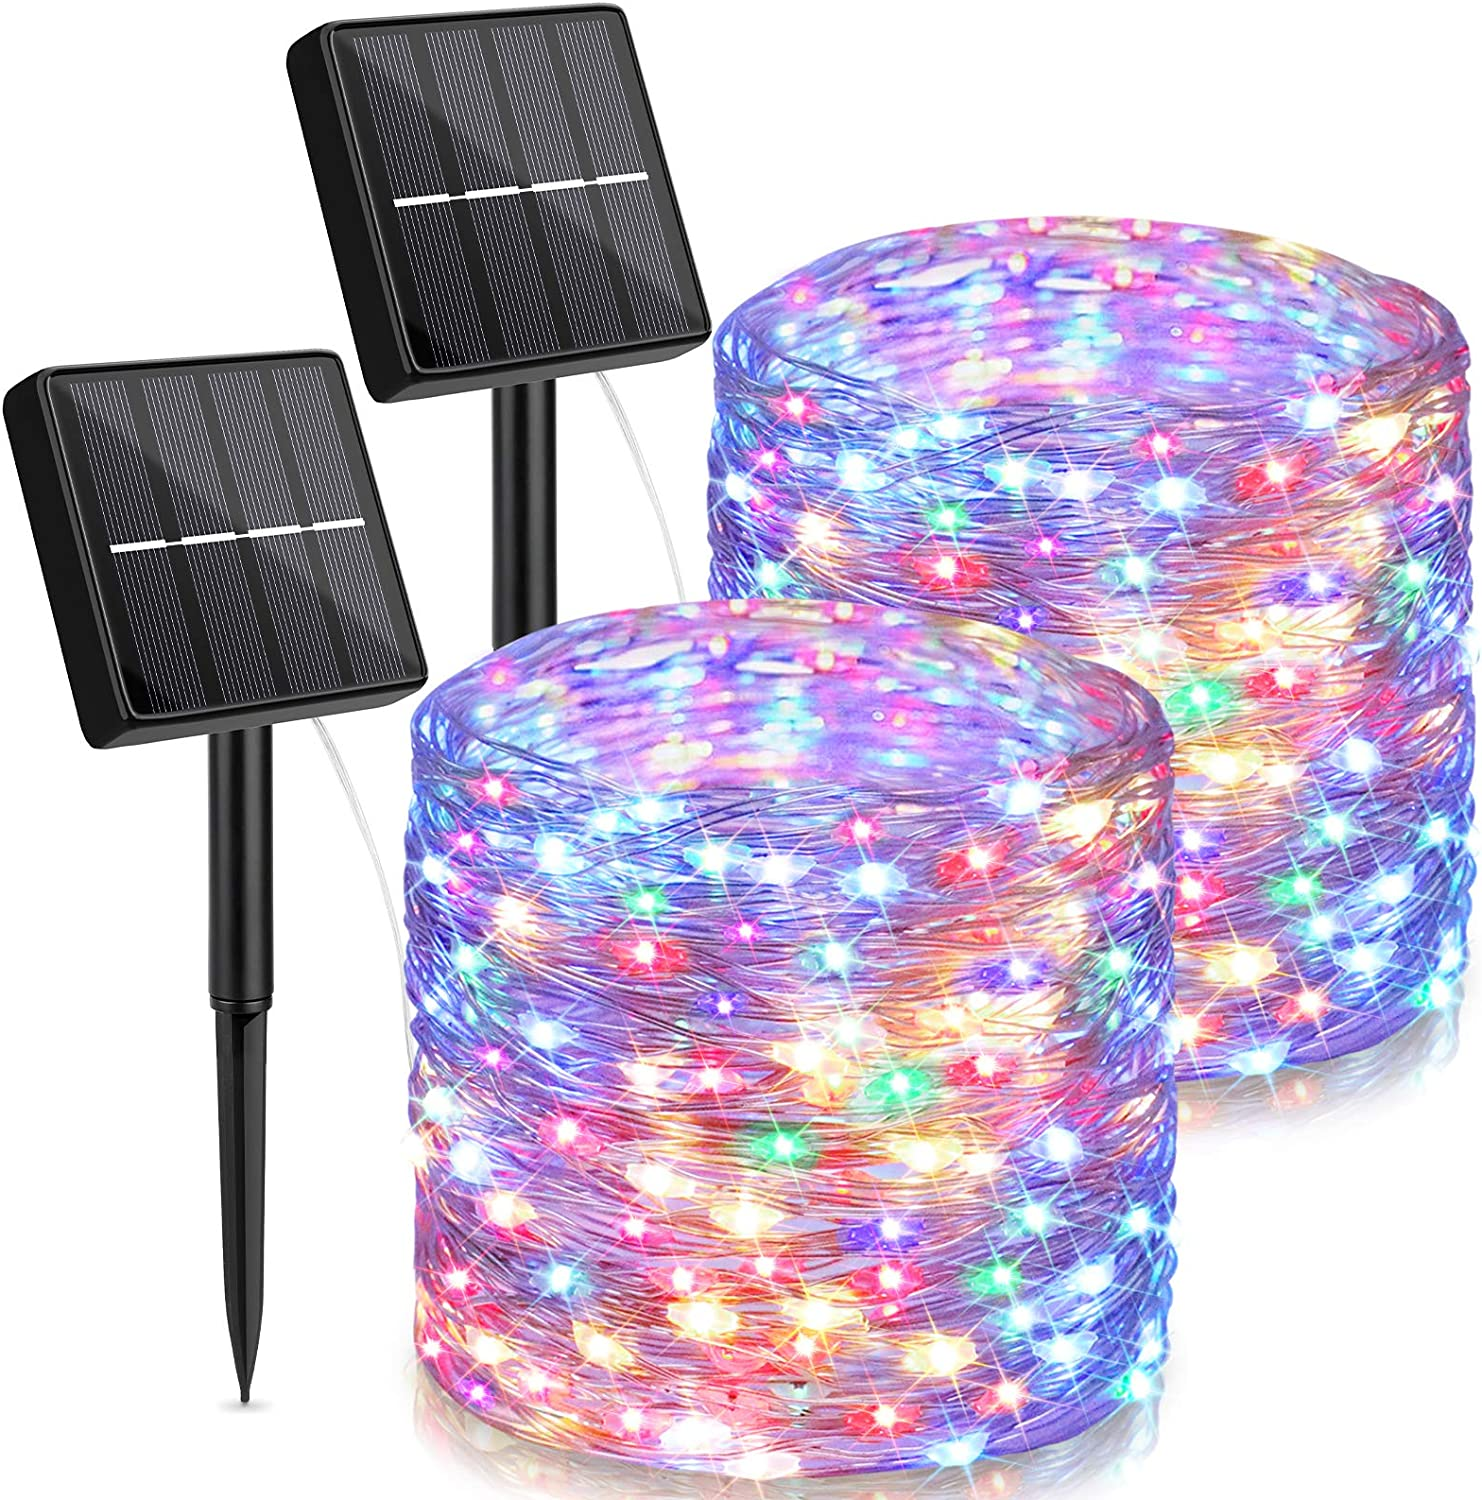 Outdoor Solar String Lights Waterproof 144Ft, 2-Pack Each 72FT 200 LED Solar Powered Fairy Lights with 8 Lighting Modes, Cooper Wire Lights Decoration for Patio, Garden, Party, Wedding (Muti Color)